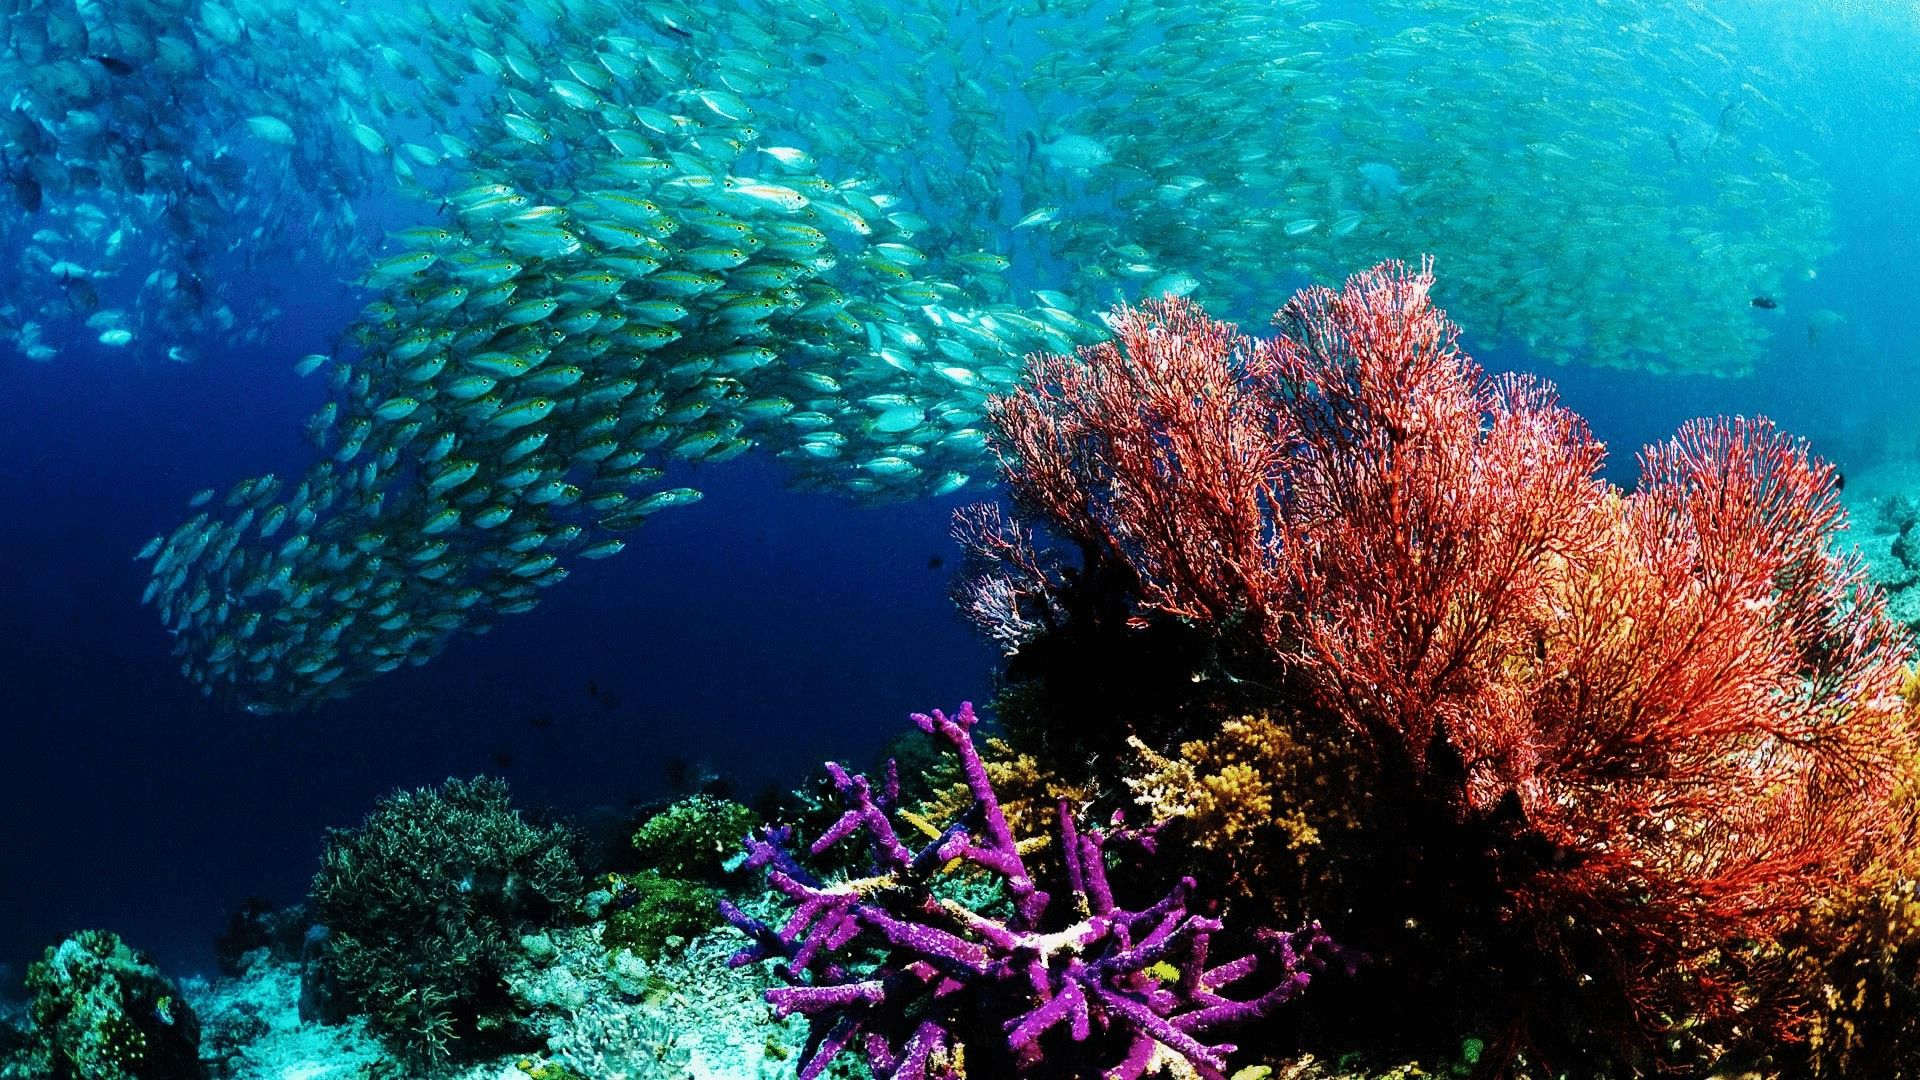 Ocean Themed download free wallpaper image search